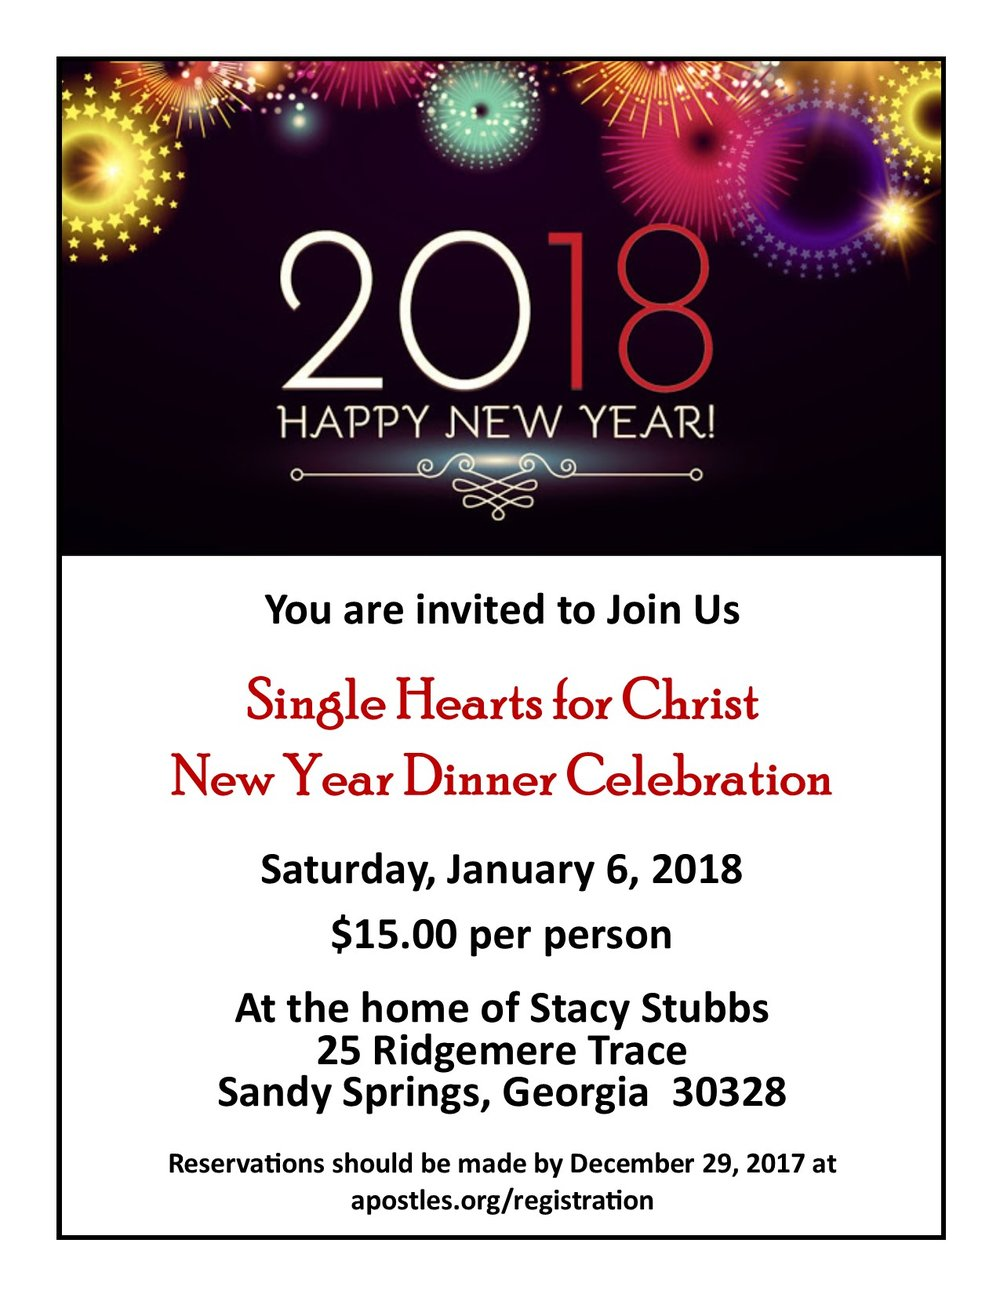 New Year Dinner Invitation 2018.jpg